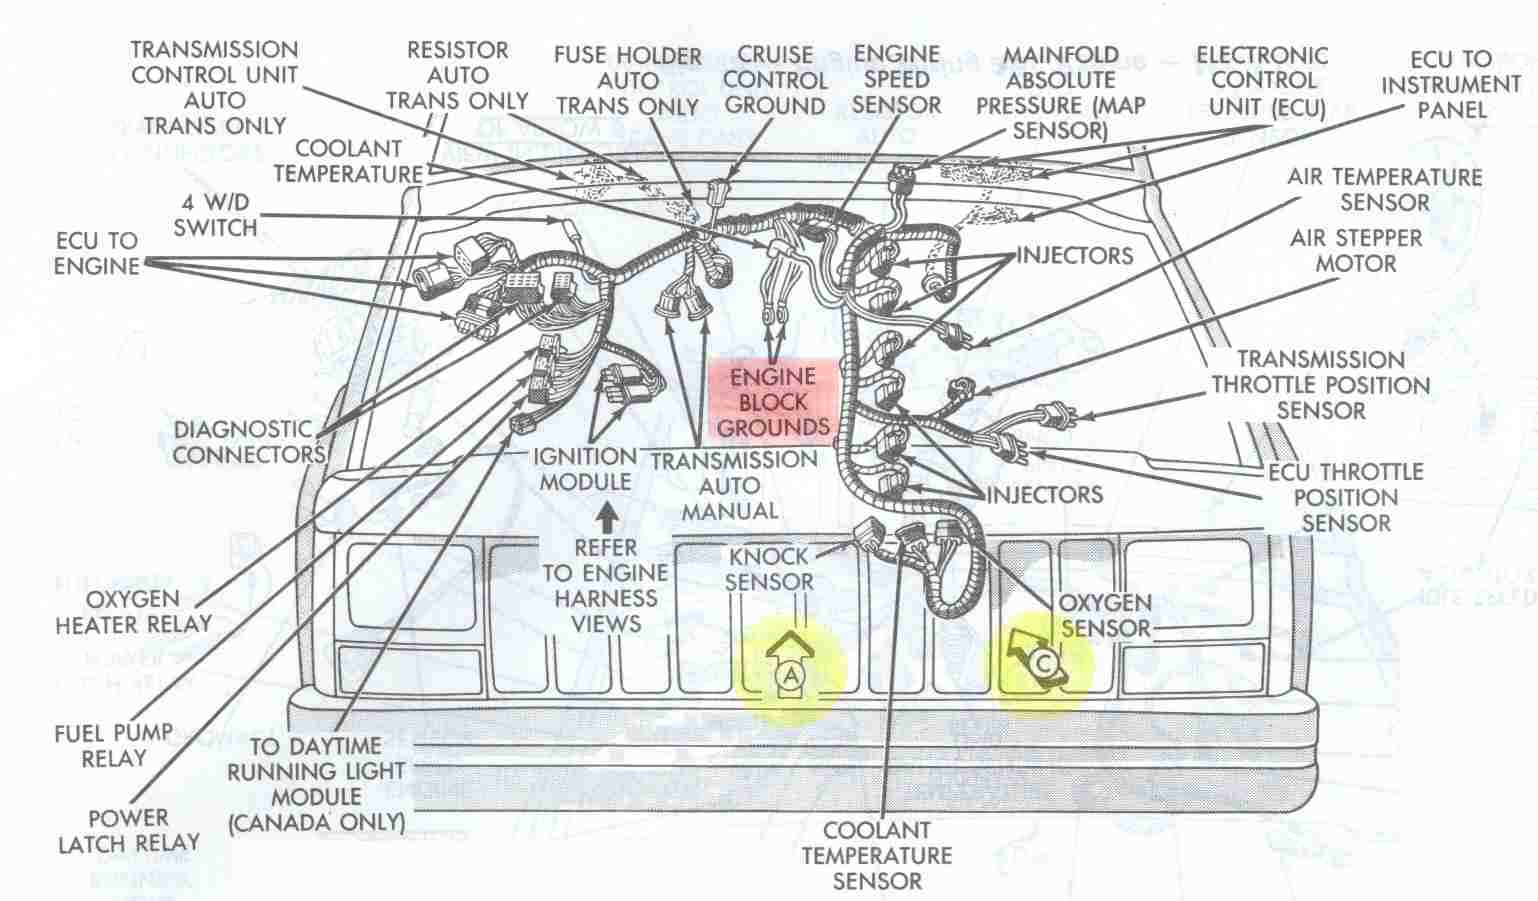 2002 Ford Ranger Fuse Box Diagram Wiring Will Be A Thing 350 Chevy Ignition Html Autos Post 02